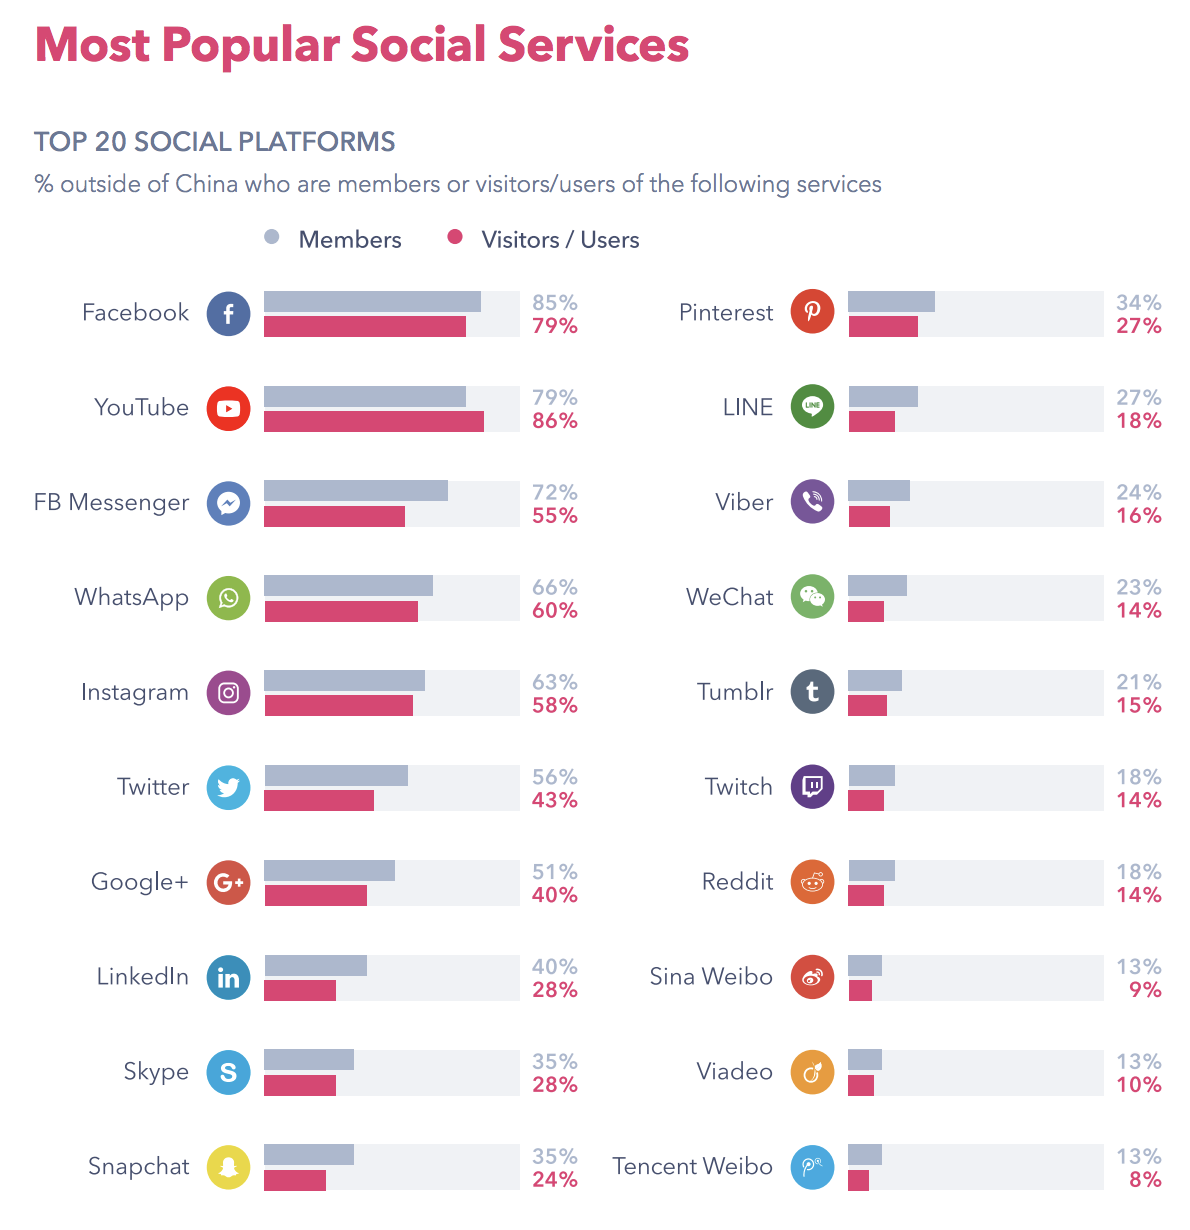 Top 20 social media networks based on usage